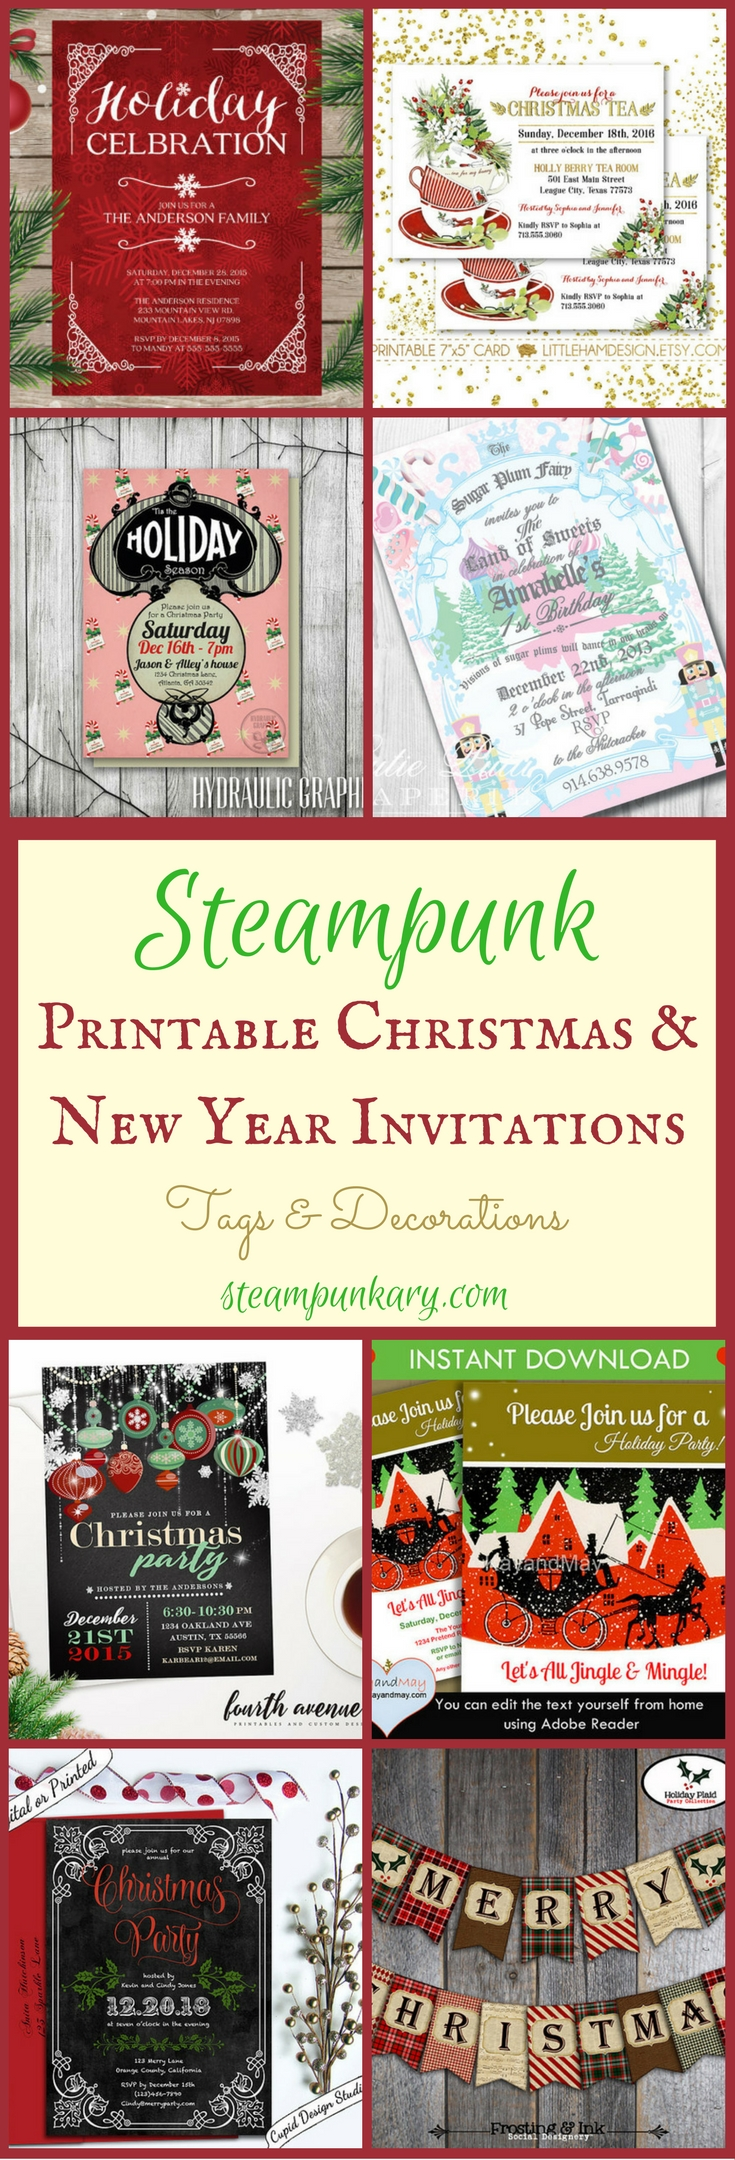 Steampunk Printable Christmas & New Year Invitations Tags & Decorations